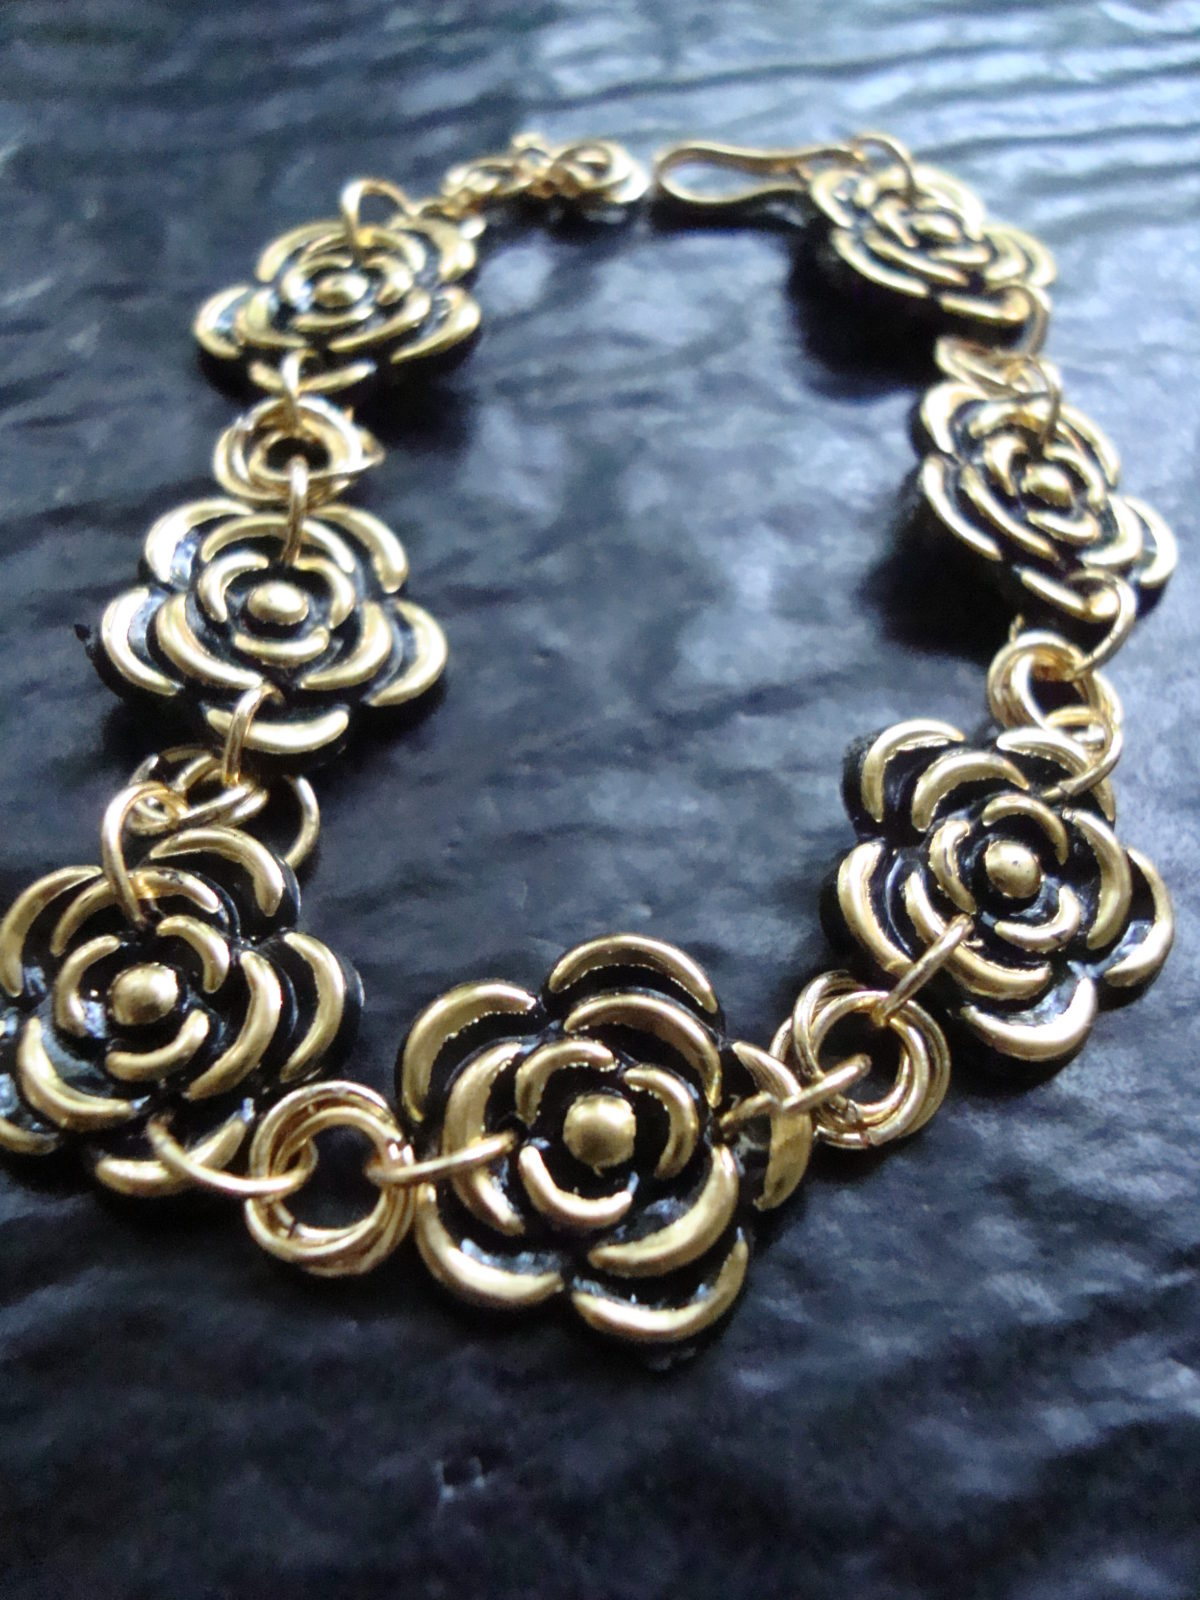 Tanirika - bracelet made with flat rose buttons and jump ring roses